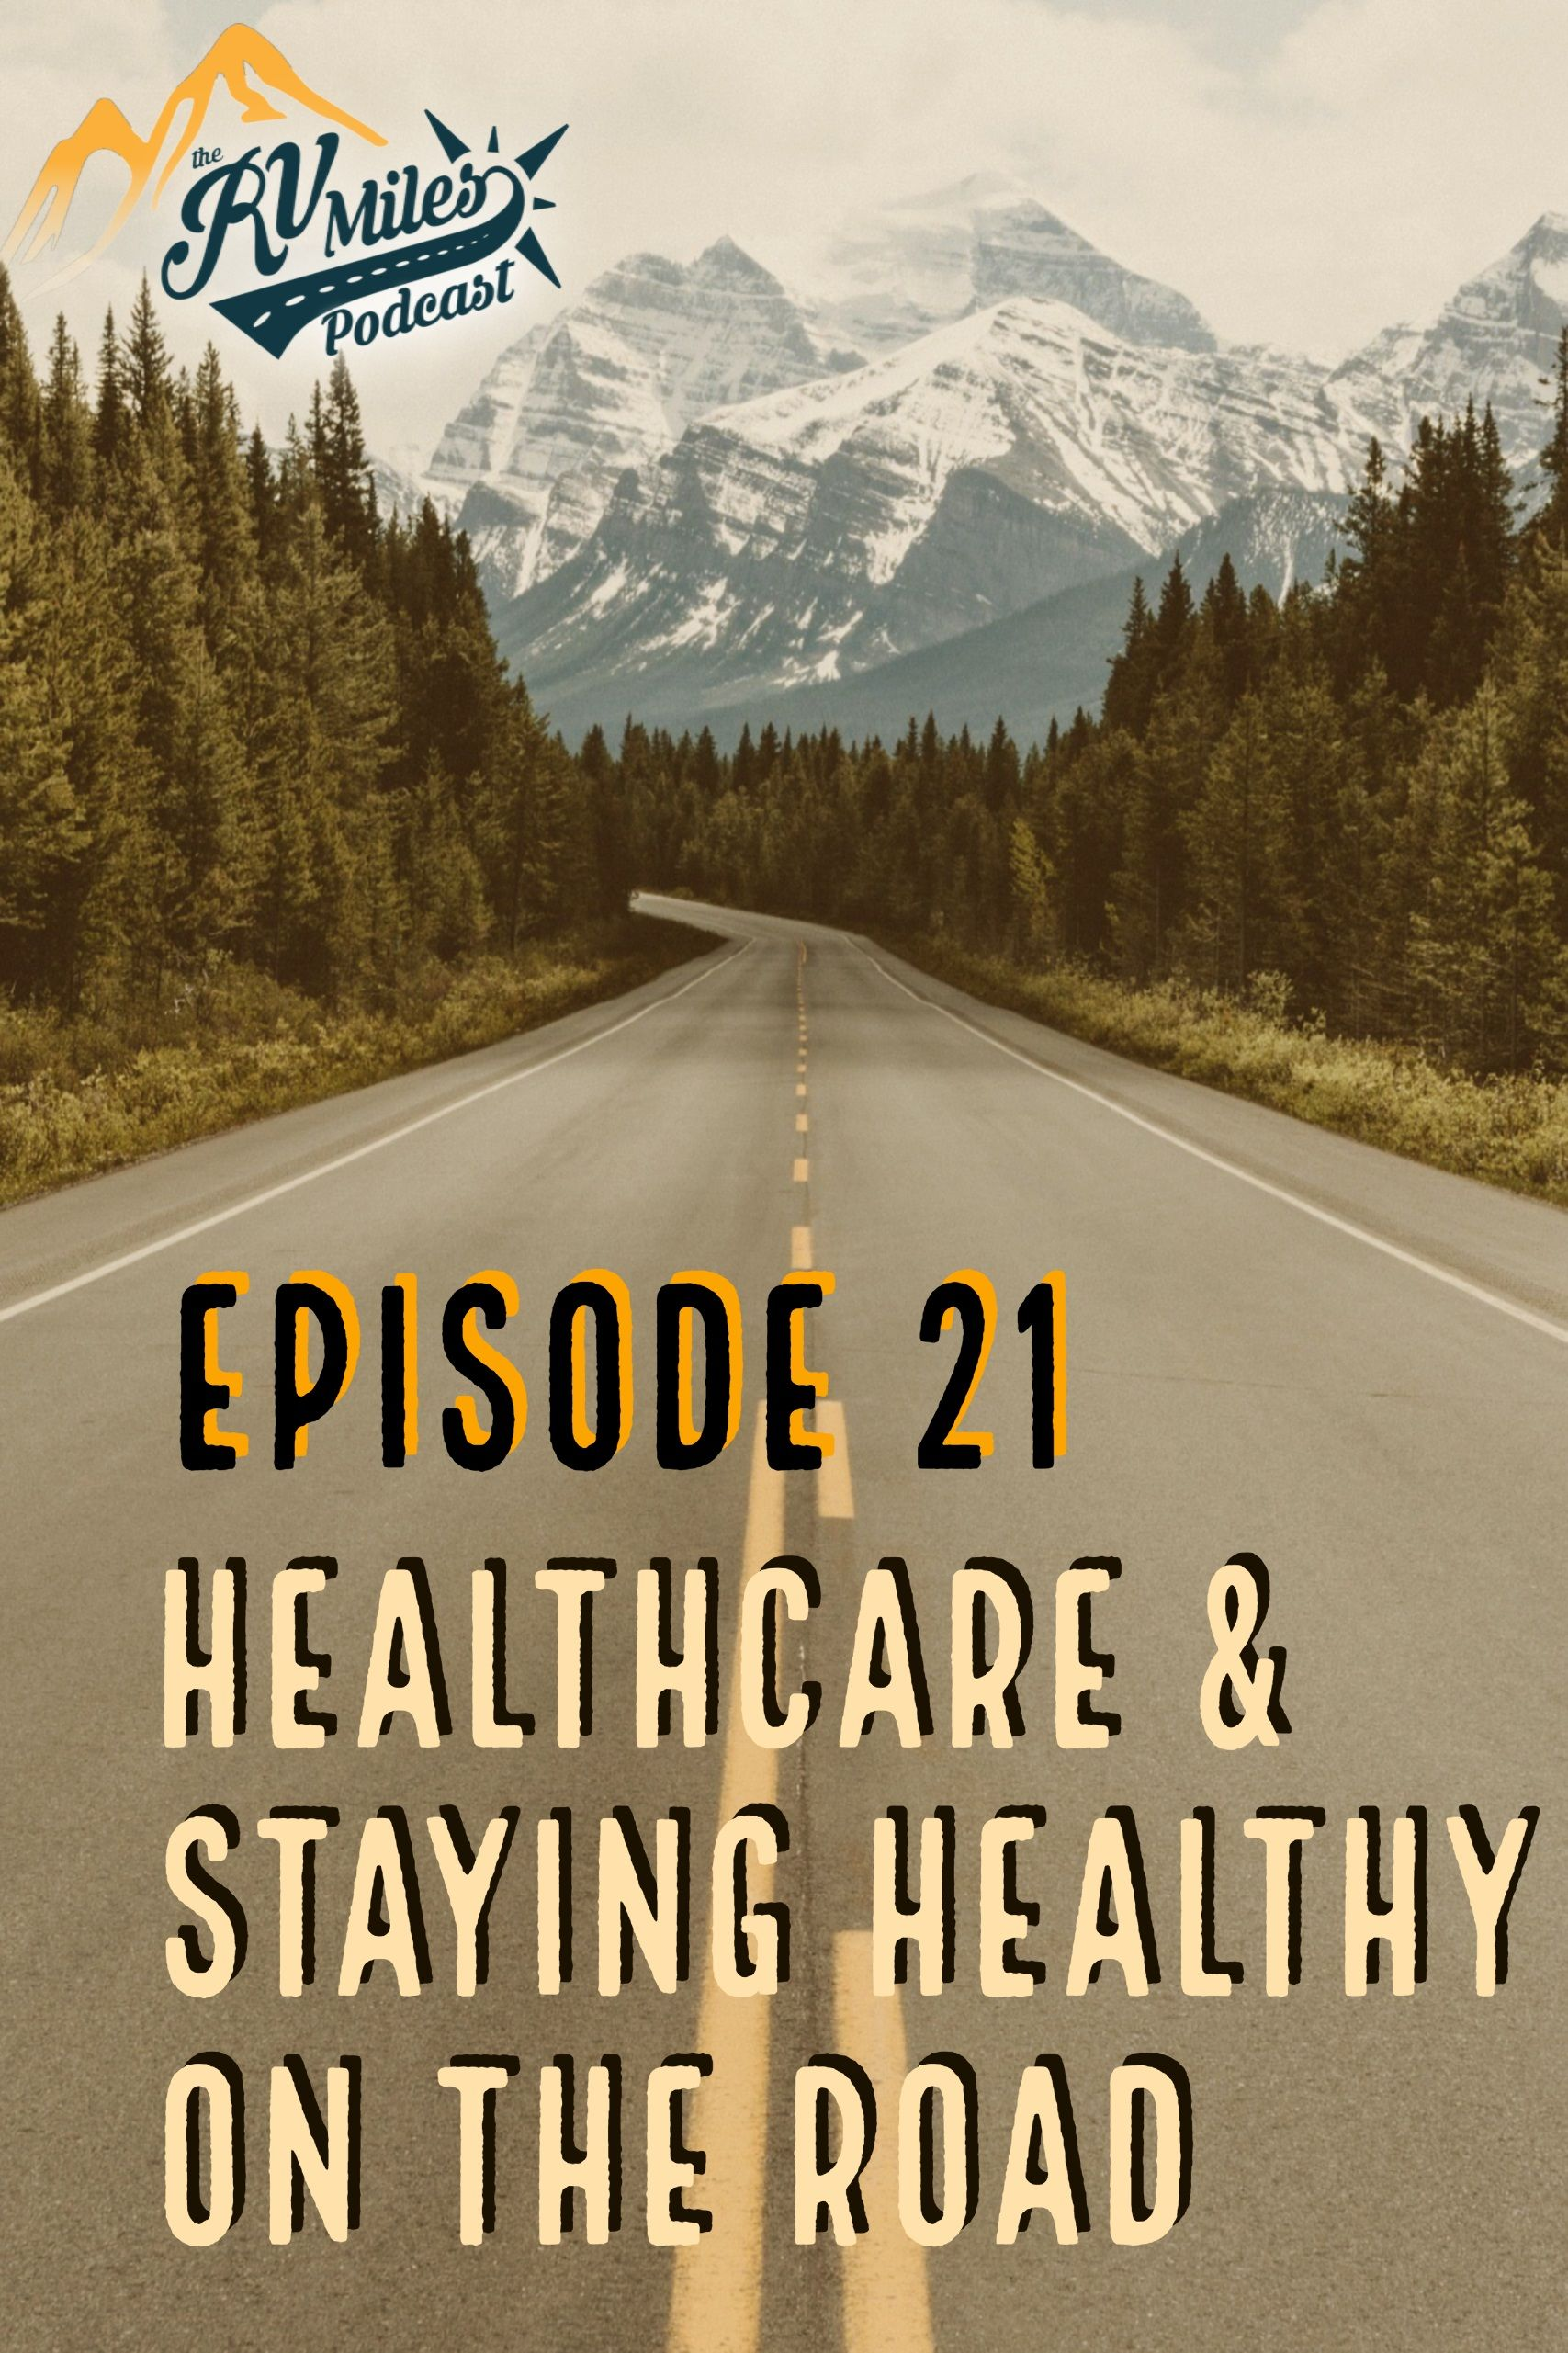 Our suggestions for staying healthy on the road, plus a